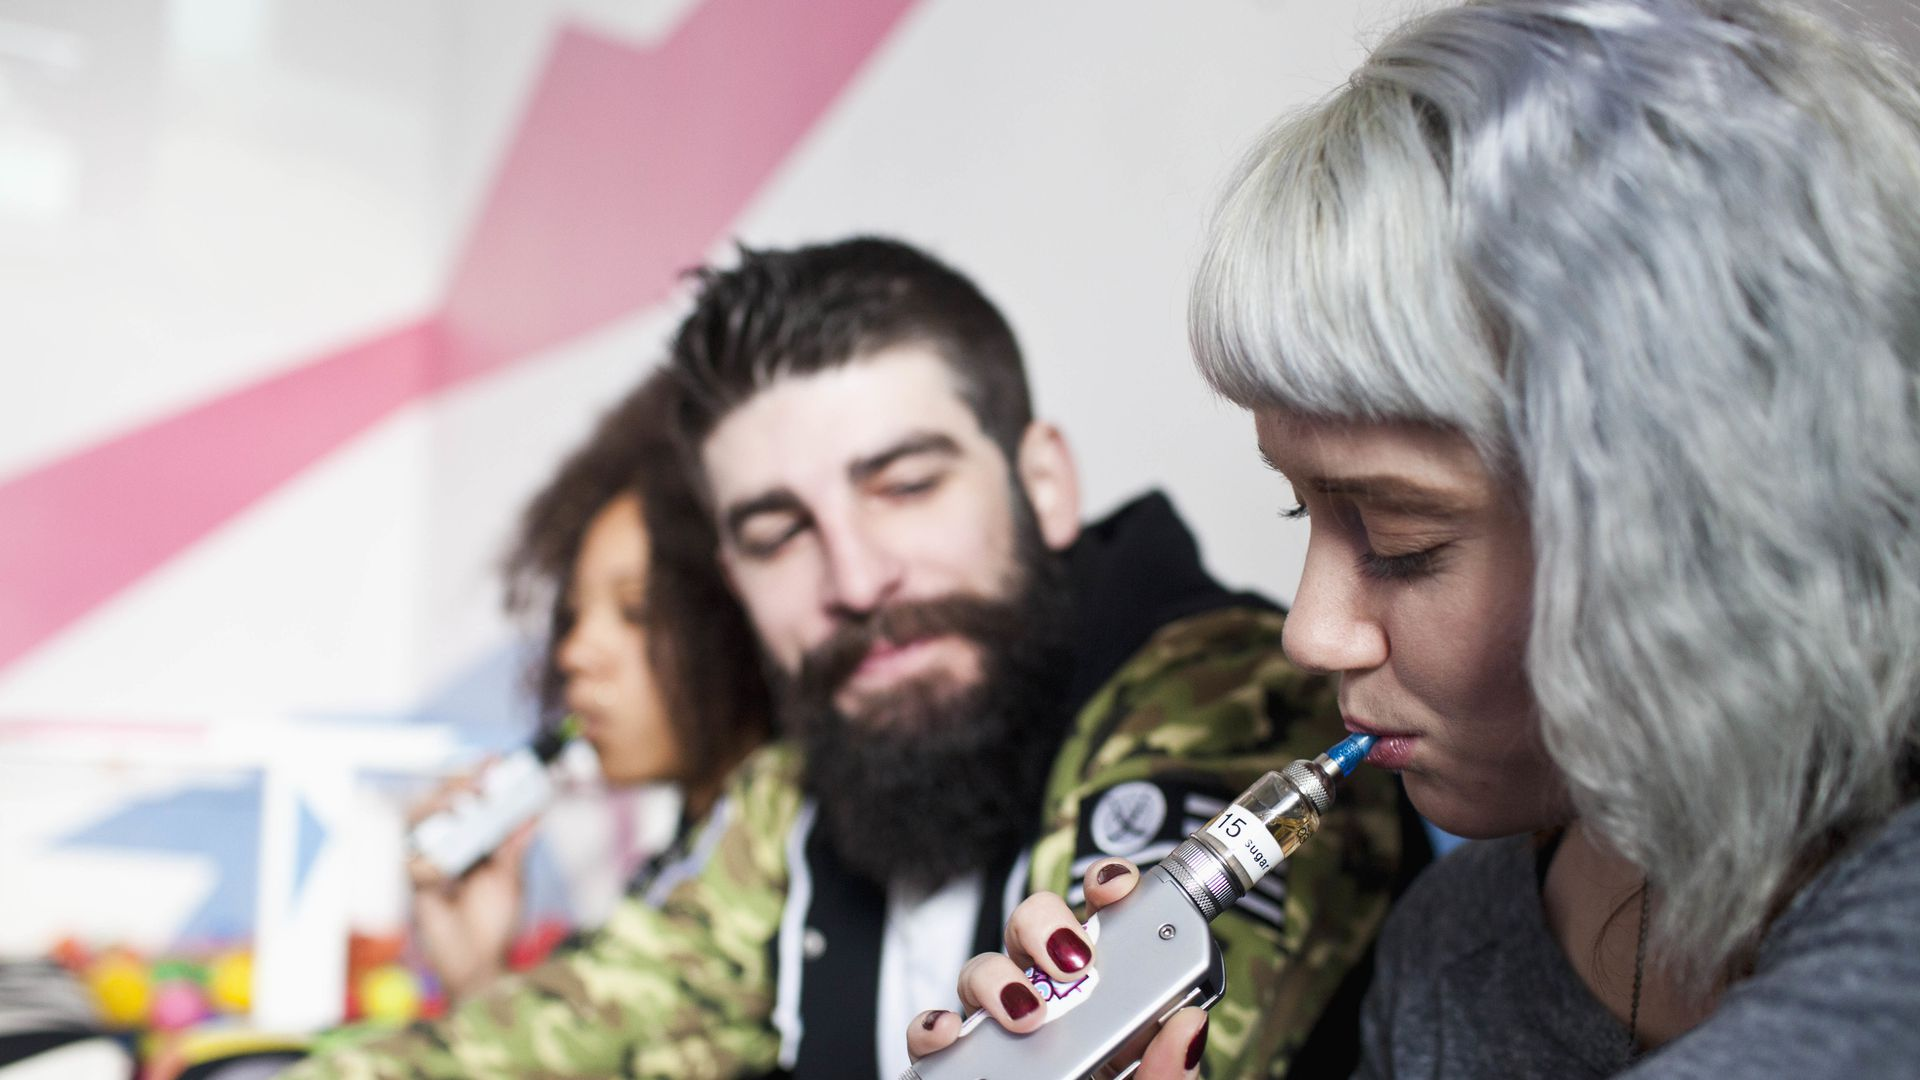 Young people vaping.